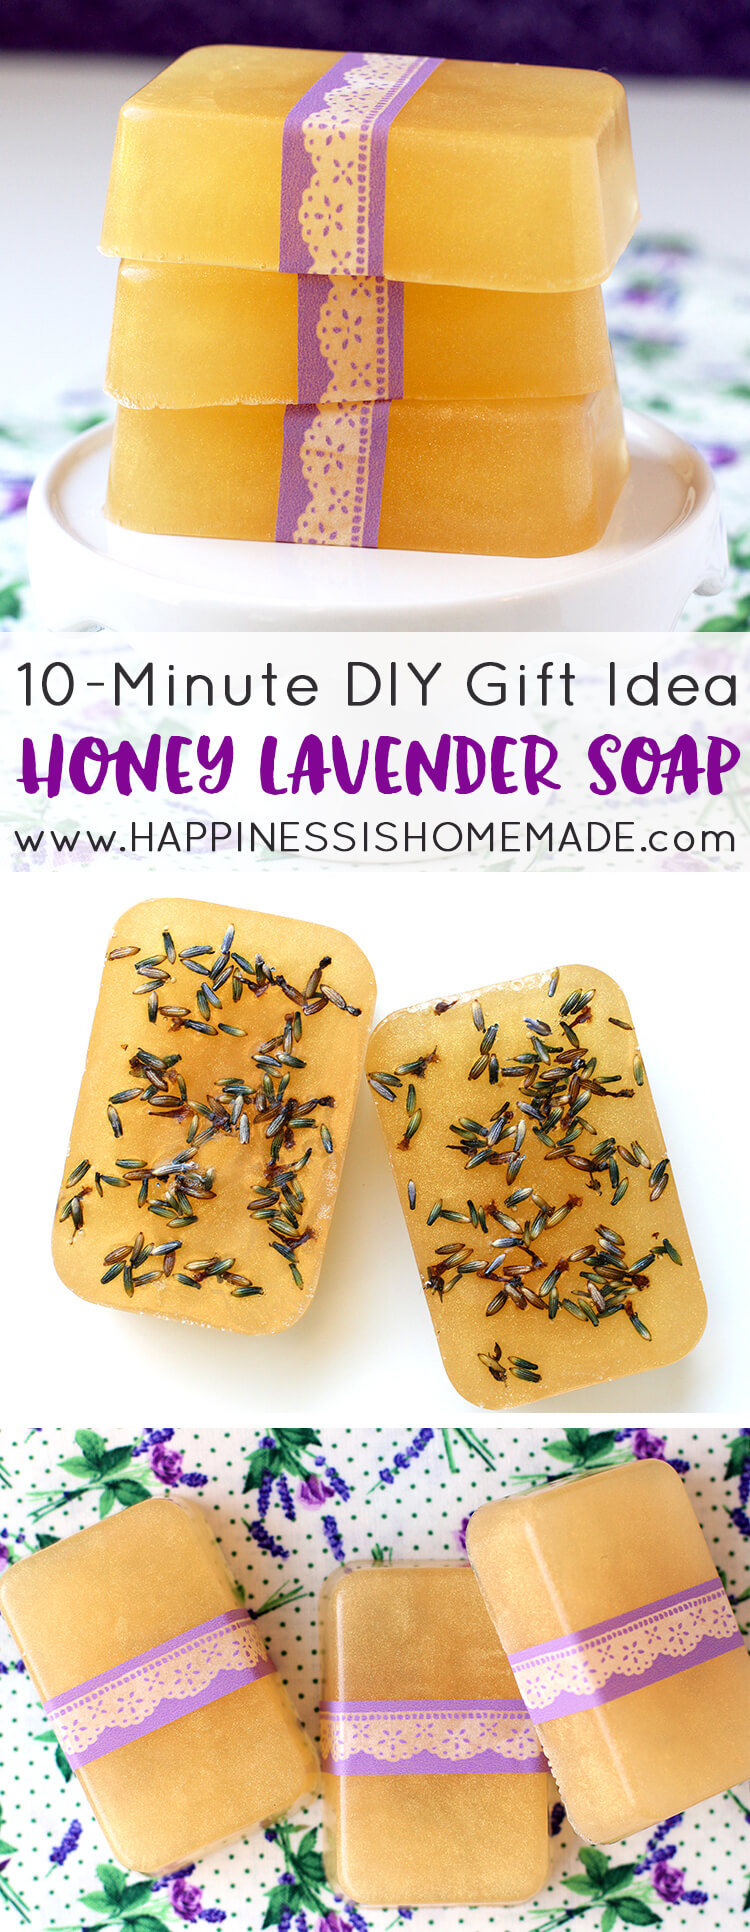 diy-honey-lavender-soap-10-minute-gift-idea